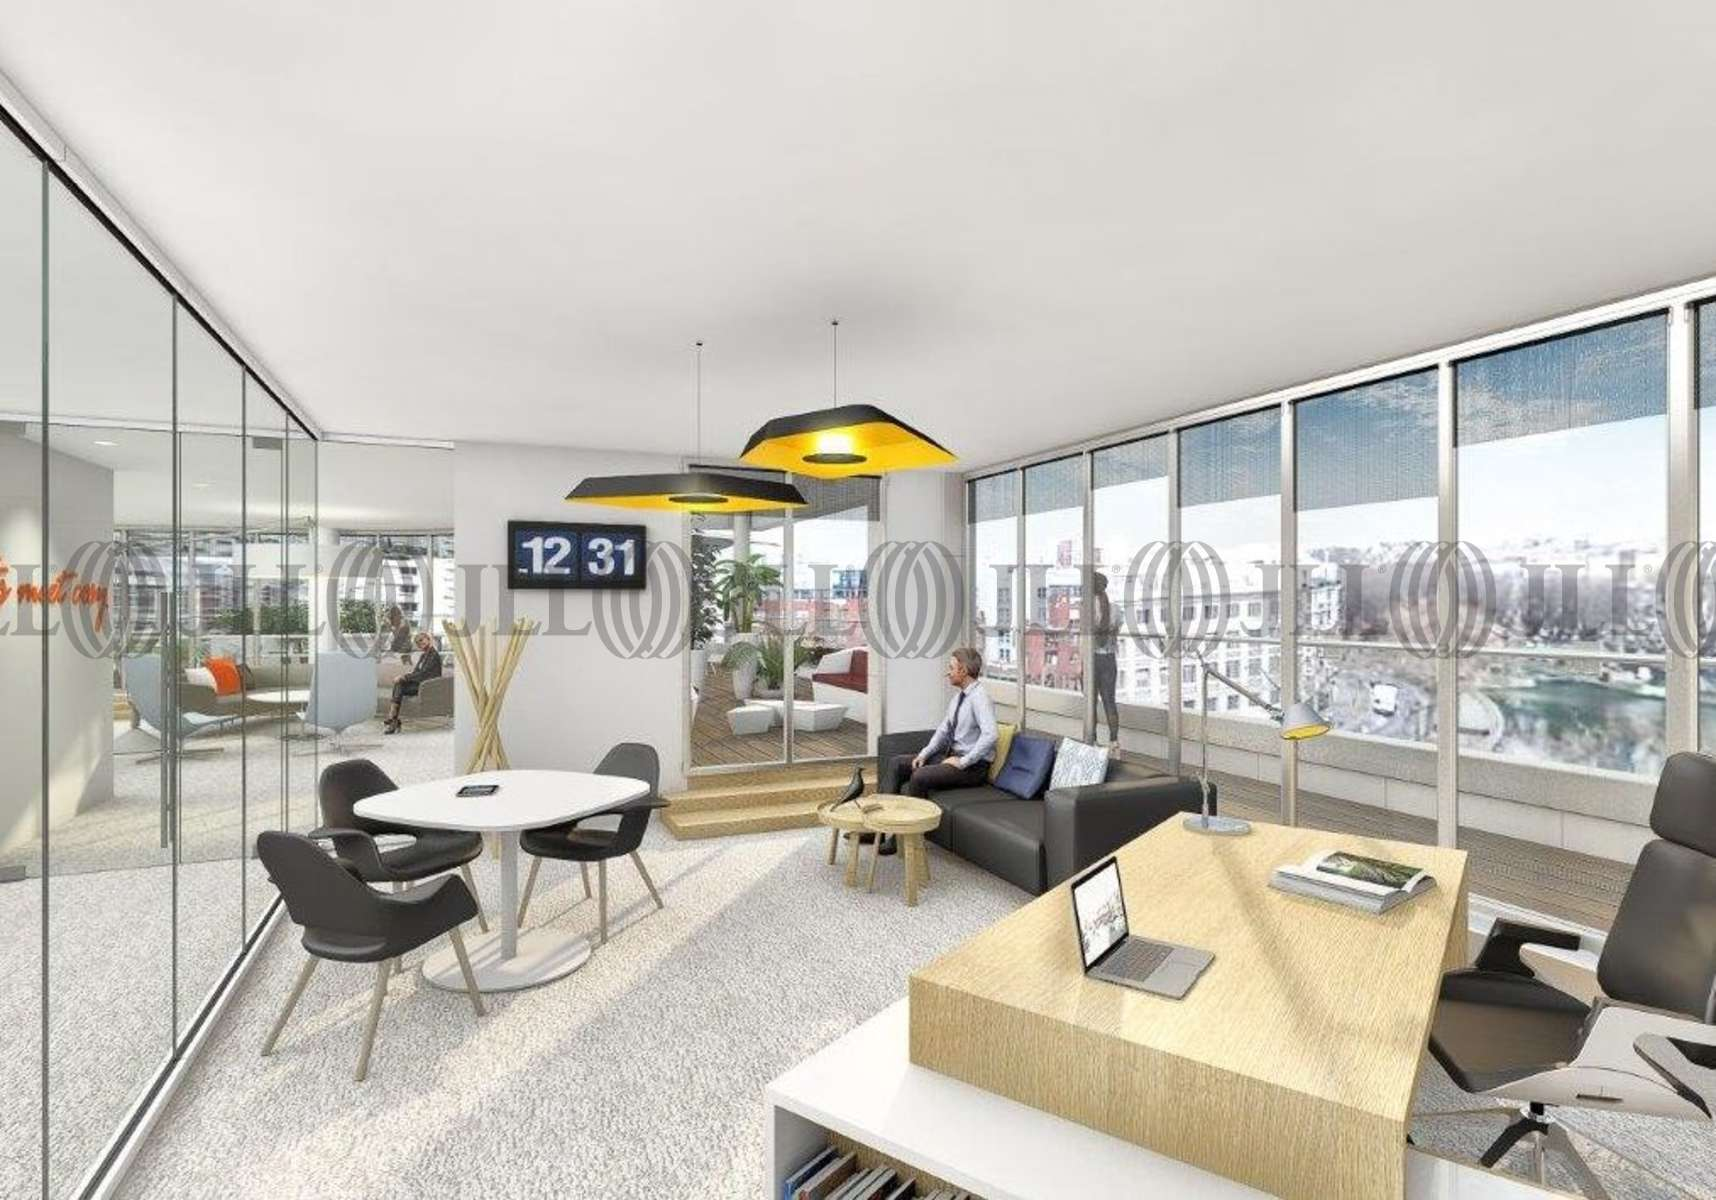 Le bureau quai paris annonce location bureau paris immobilier